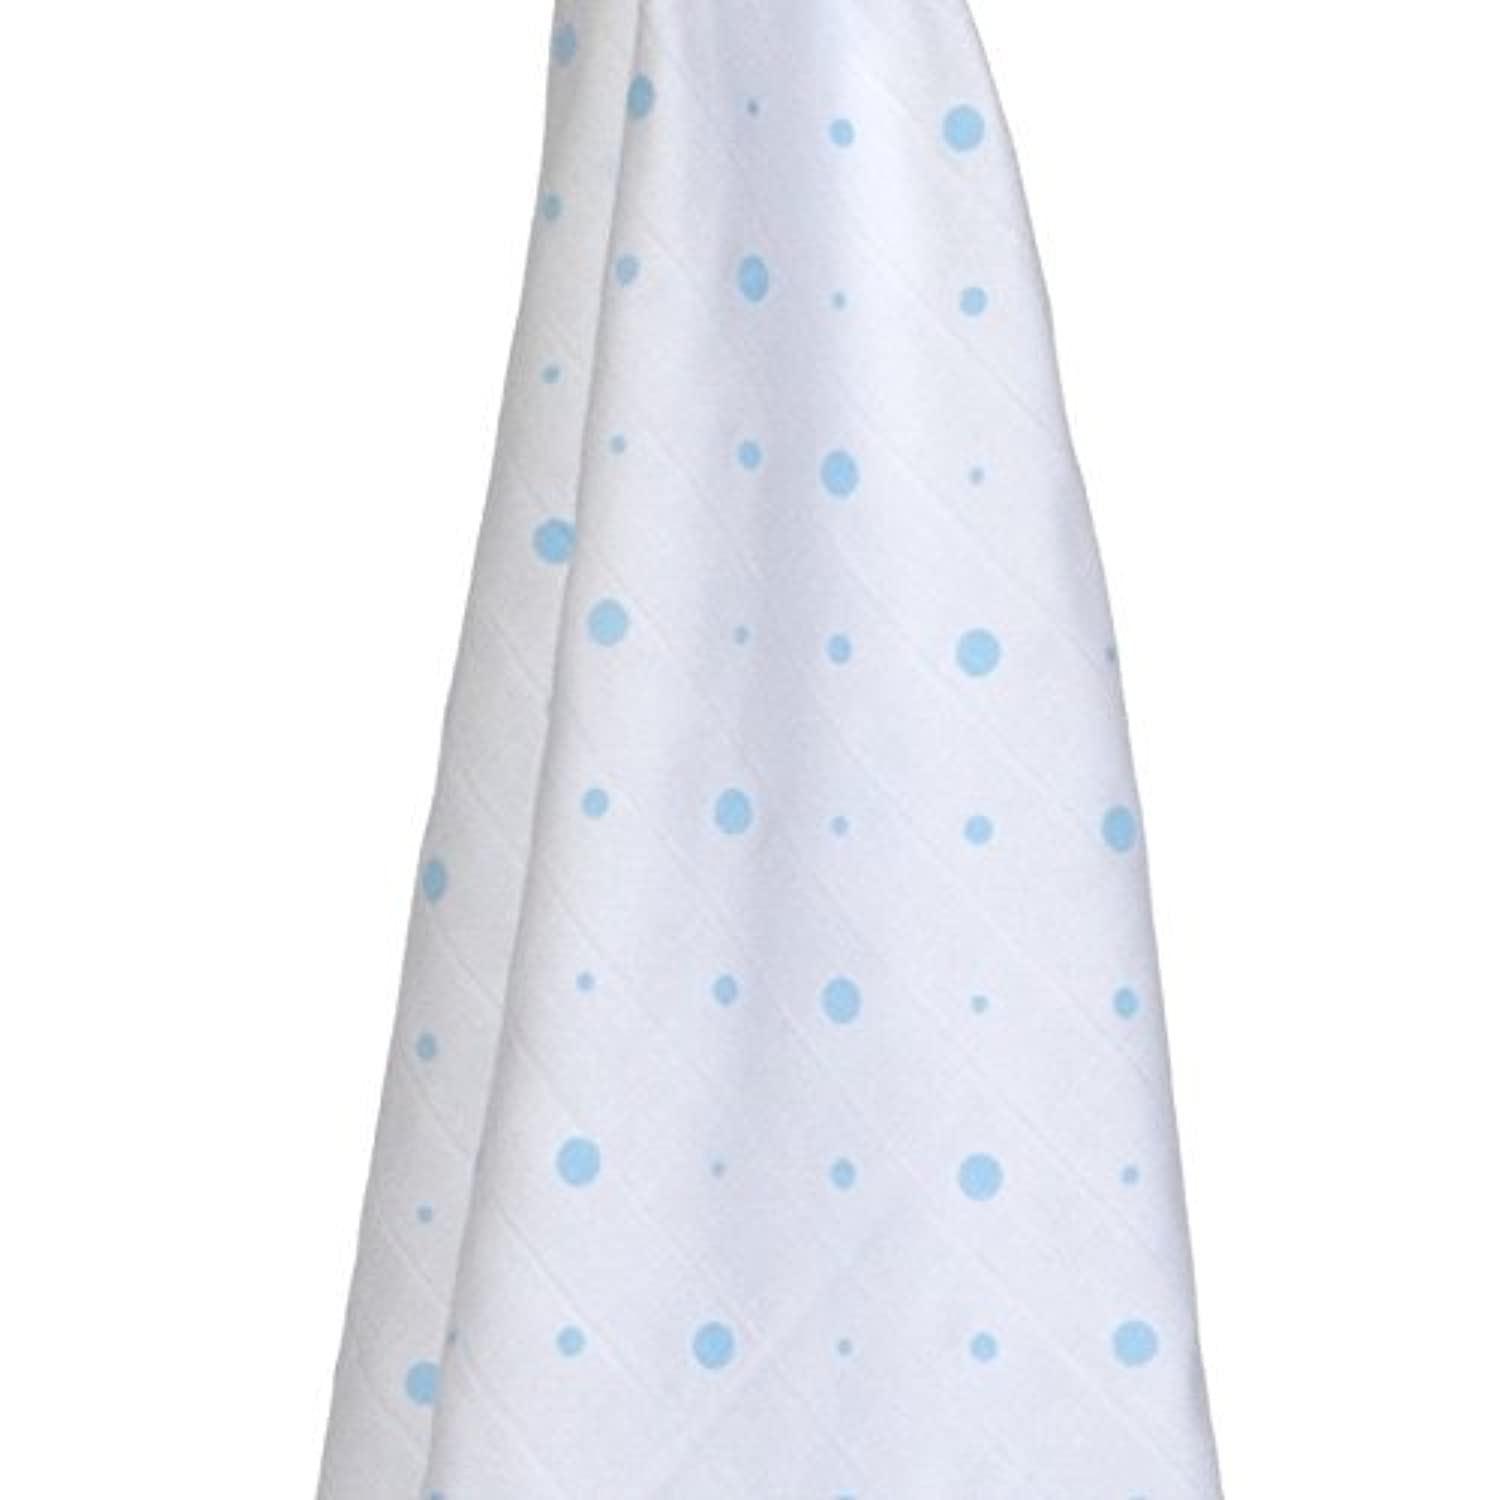 Gloop Baby Care Organic Cotton Traditional Muslin (100 x 100 cm, White by Gloop Baby Care